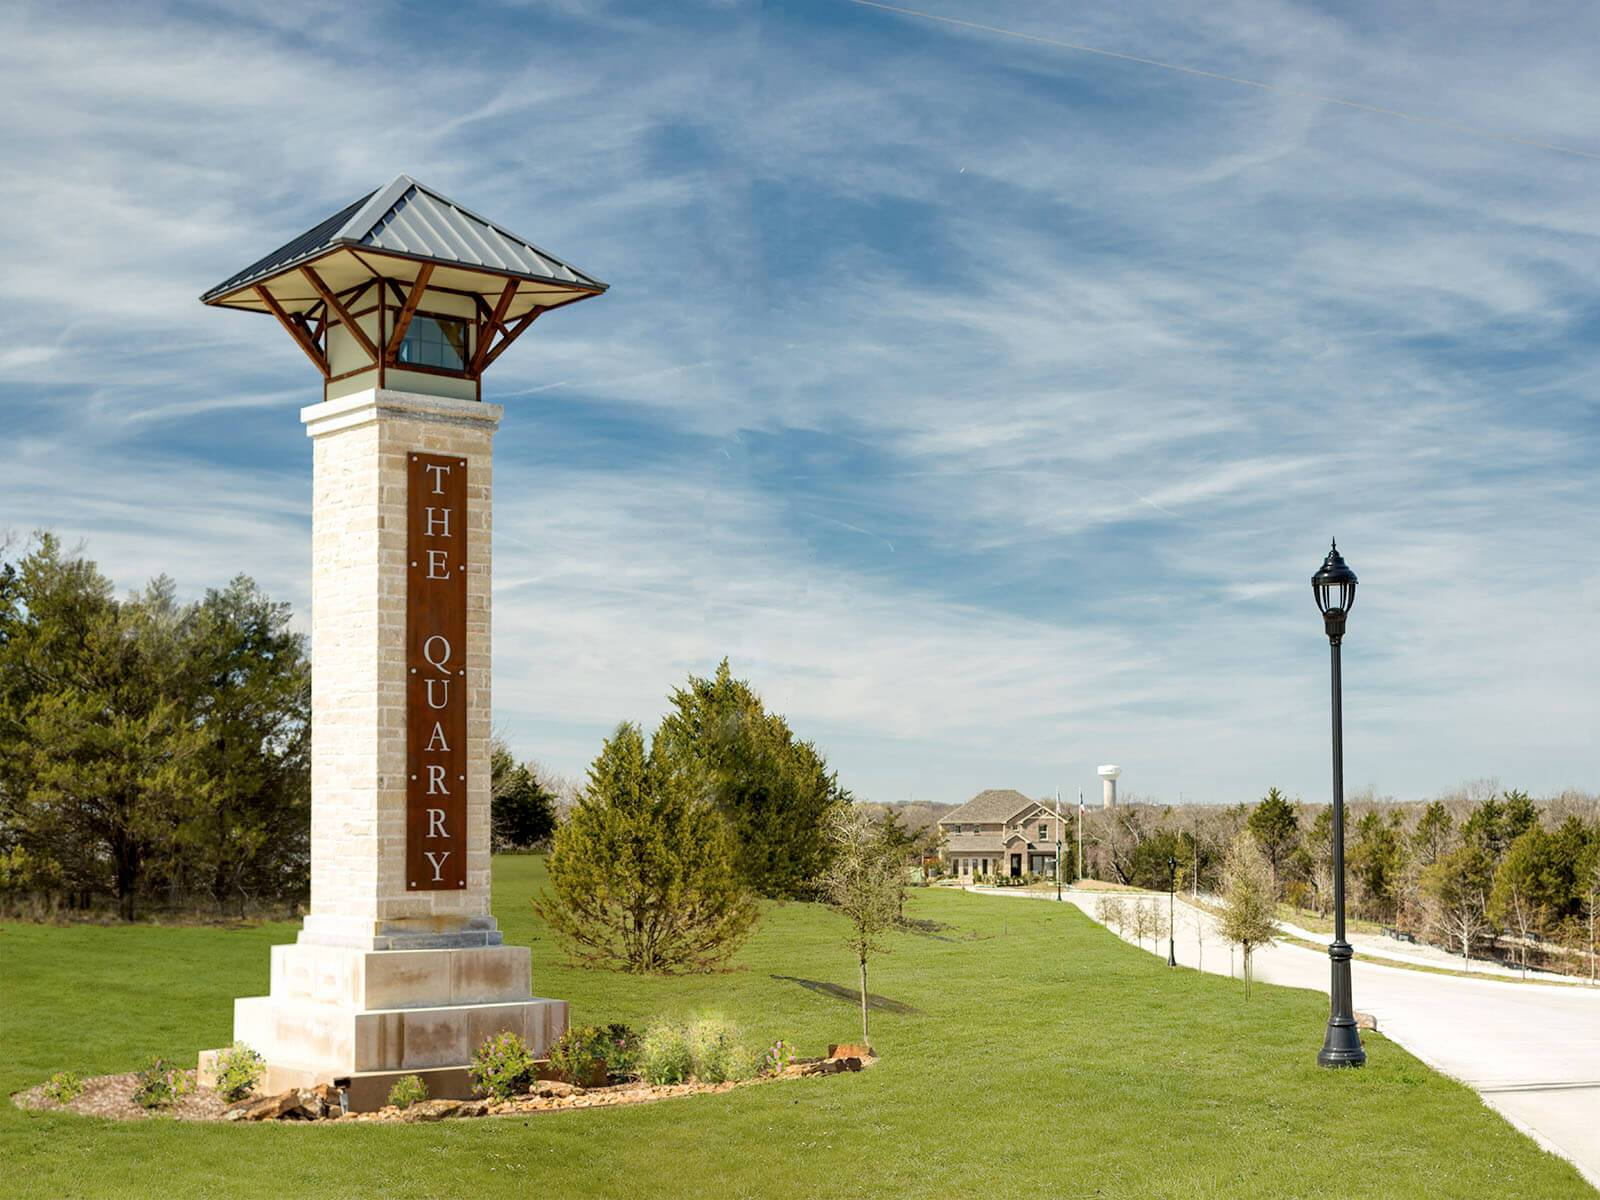 Find your perfect home at The Quarry at Stoneridge.